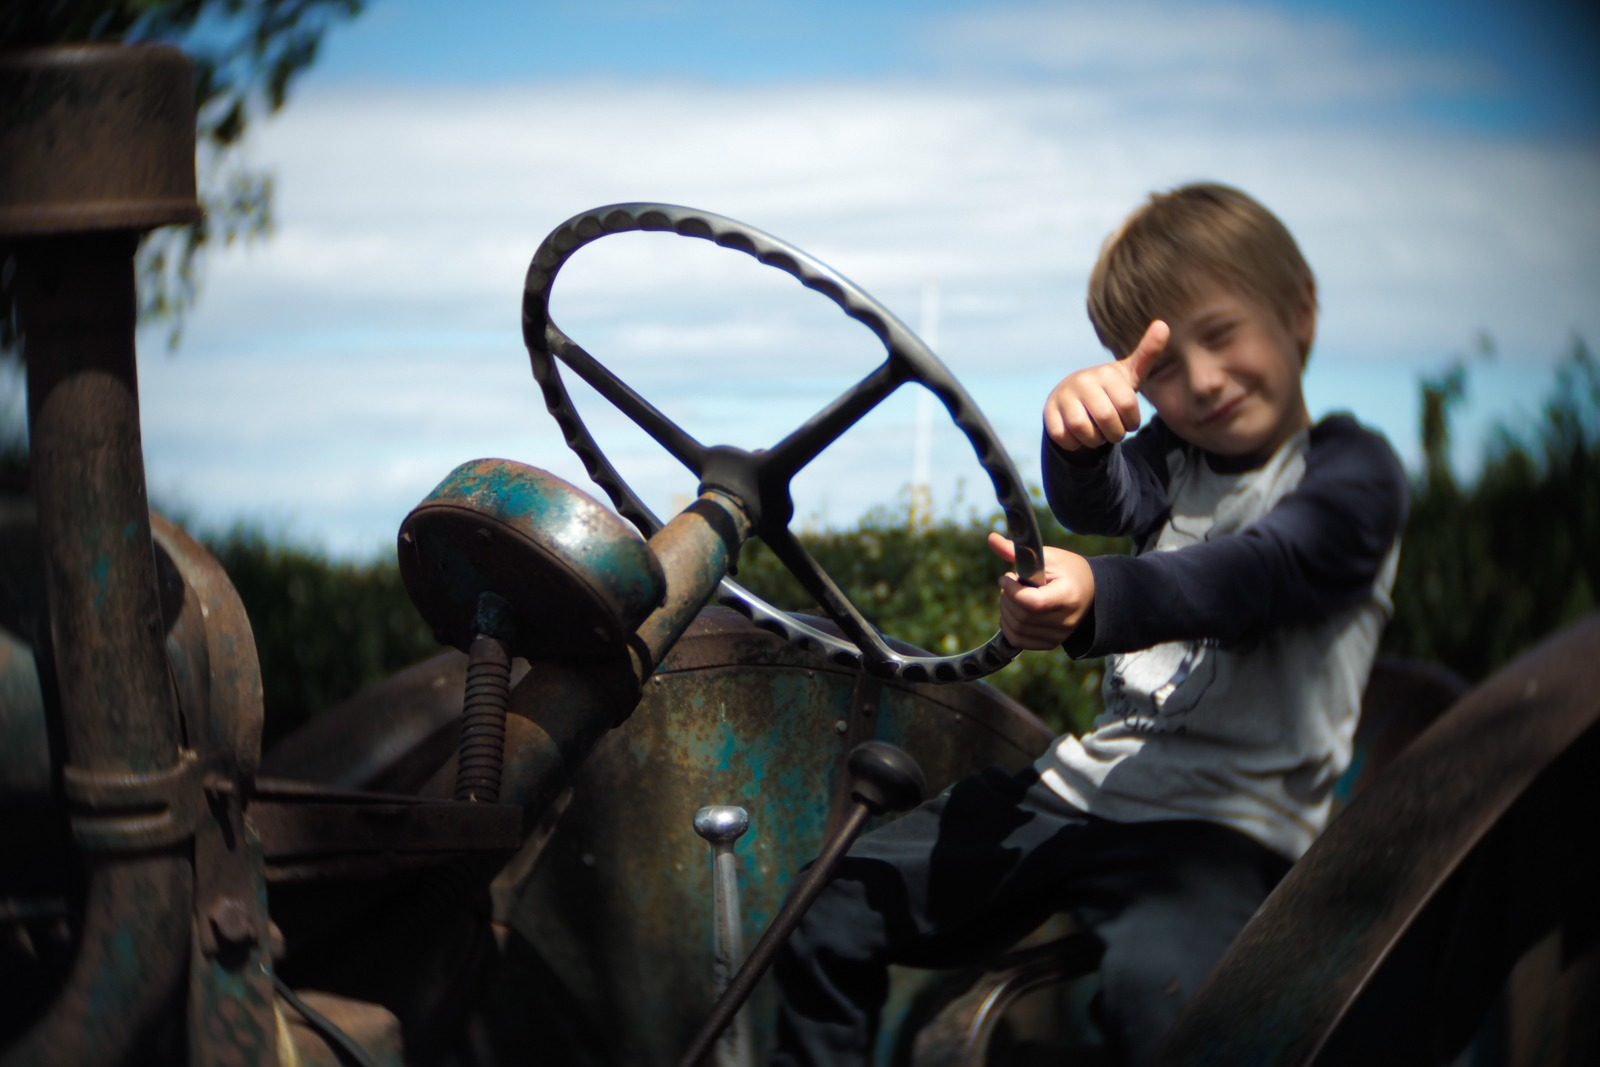 Felix on tractor shot with an SLR Magic Toy Lens